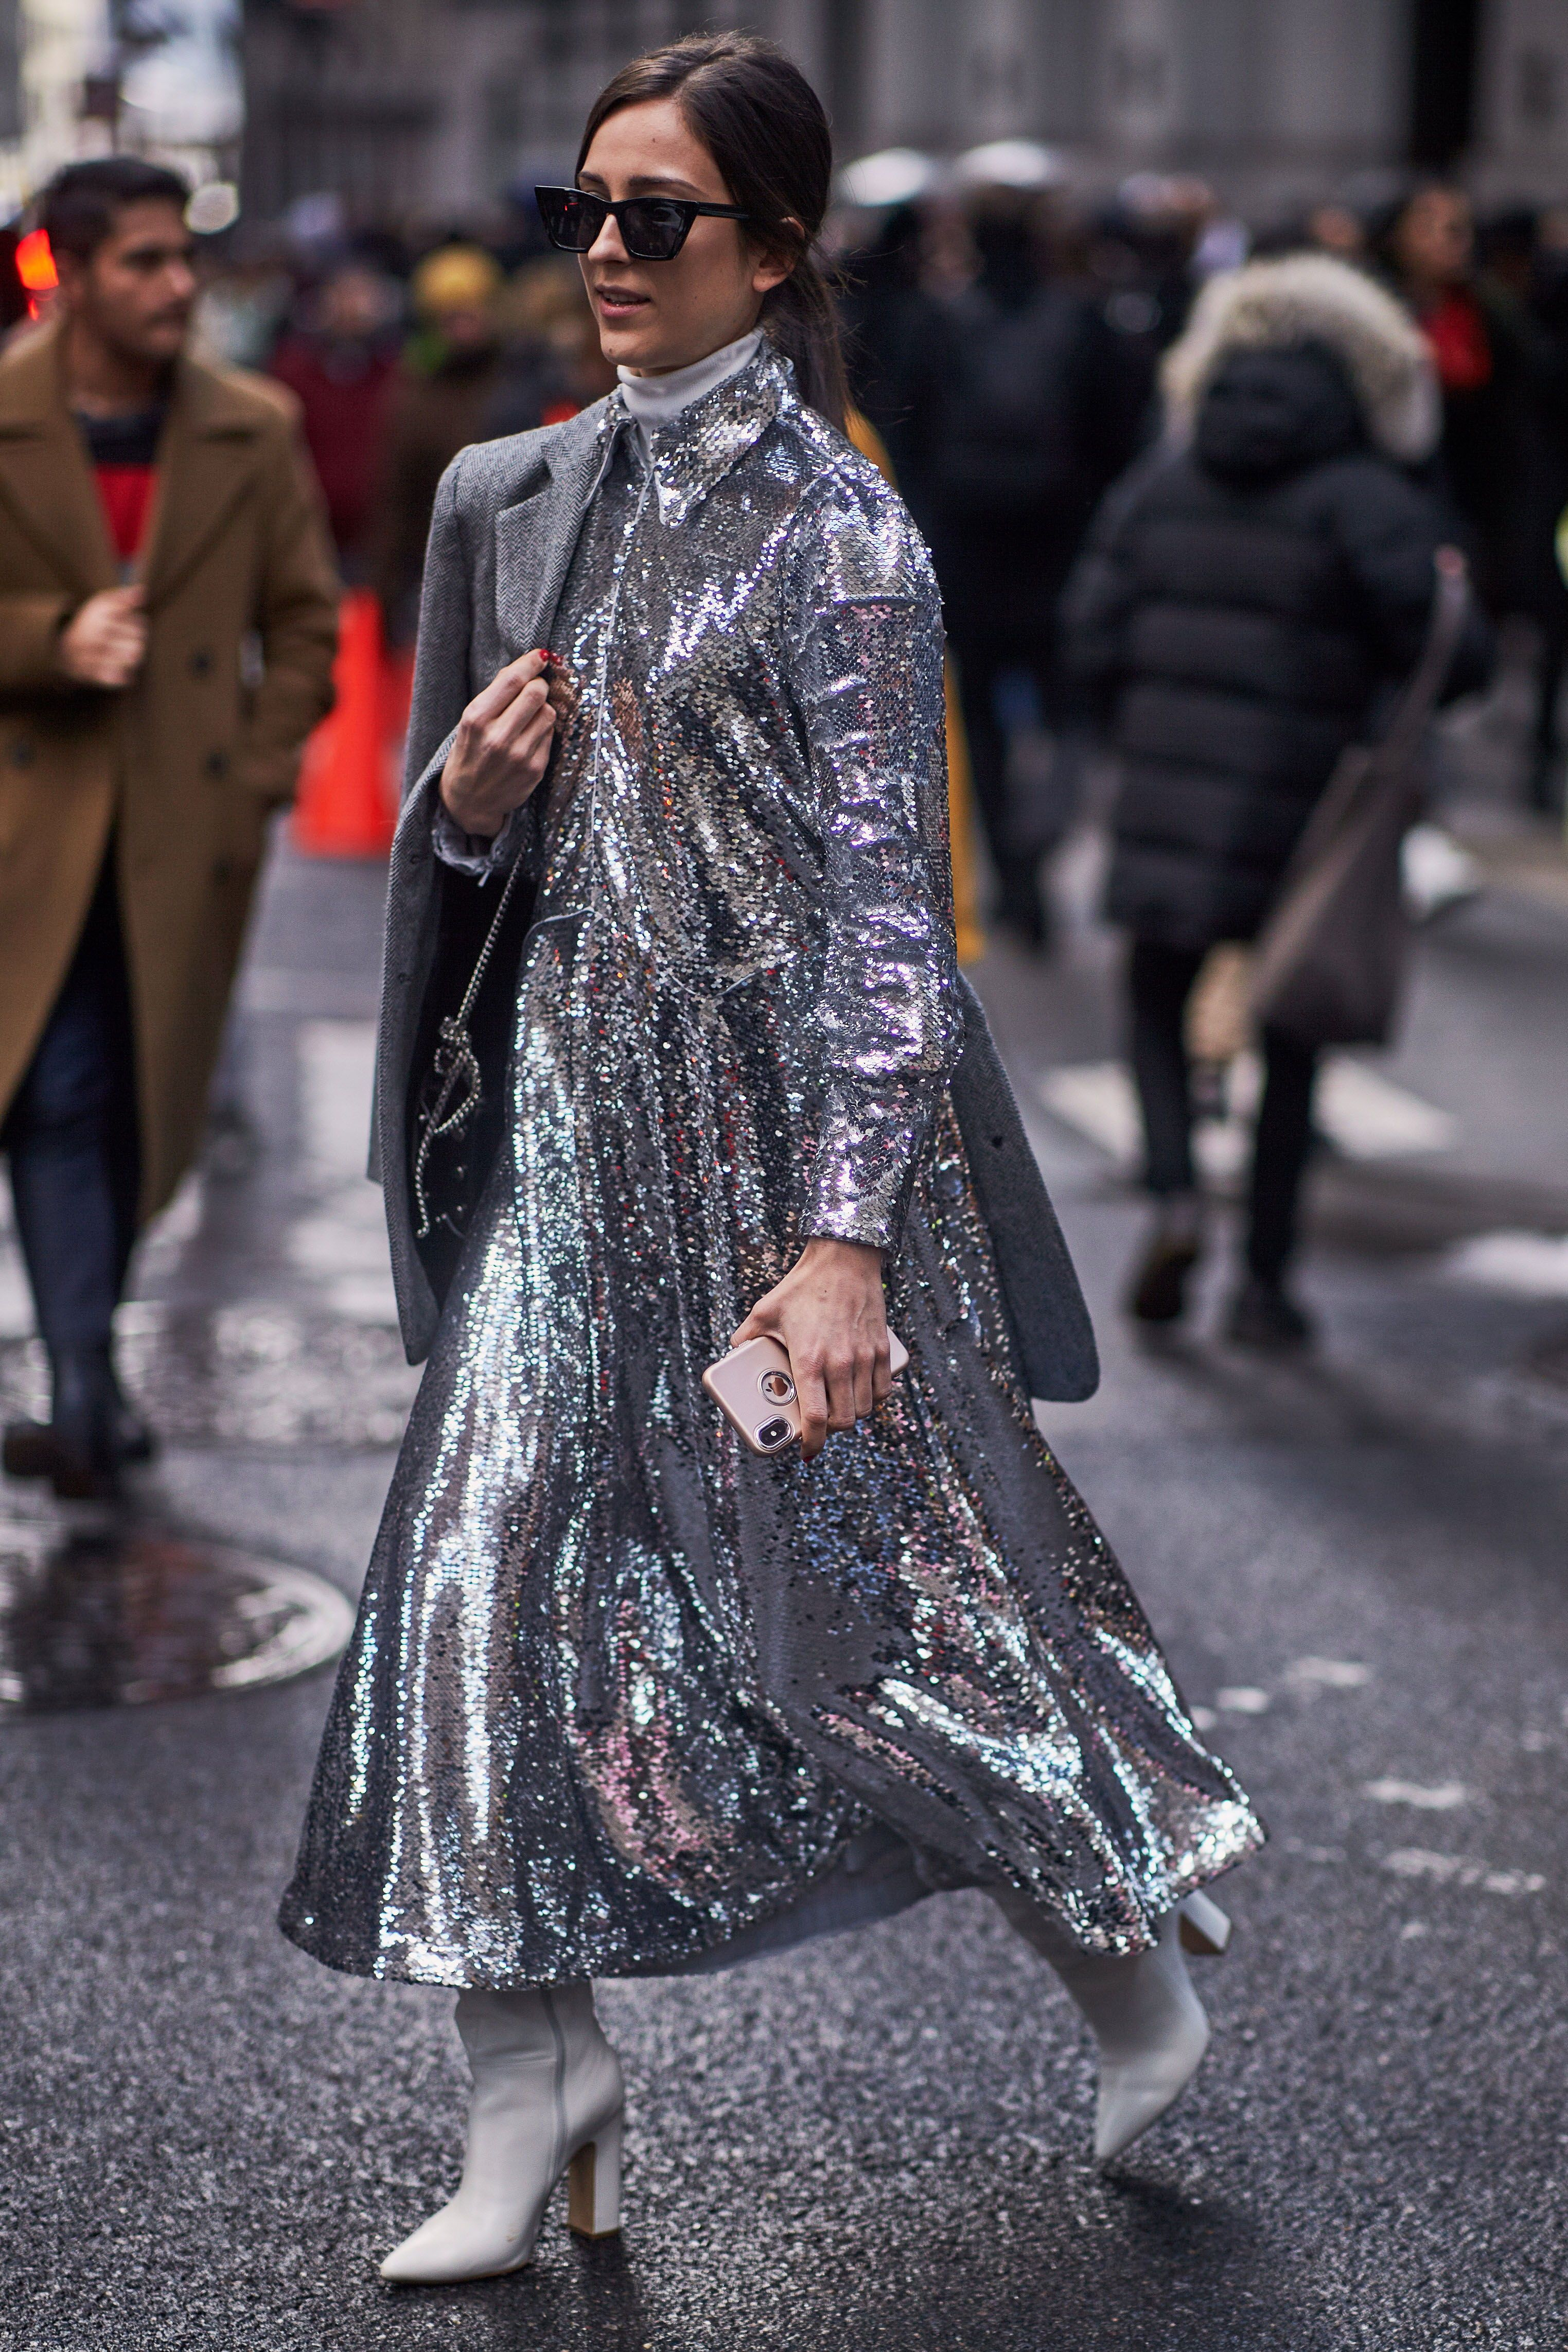 During New York a w 2019 #style #streetstyle #fashion